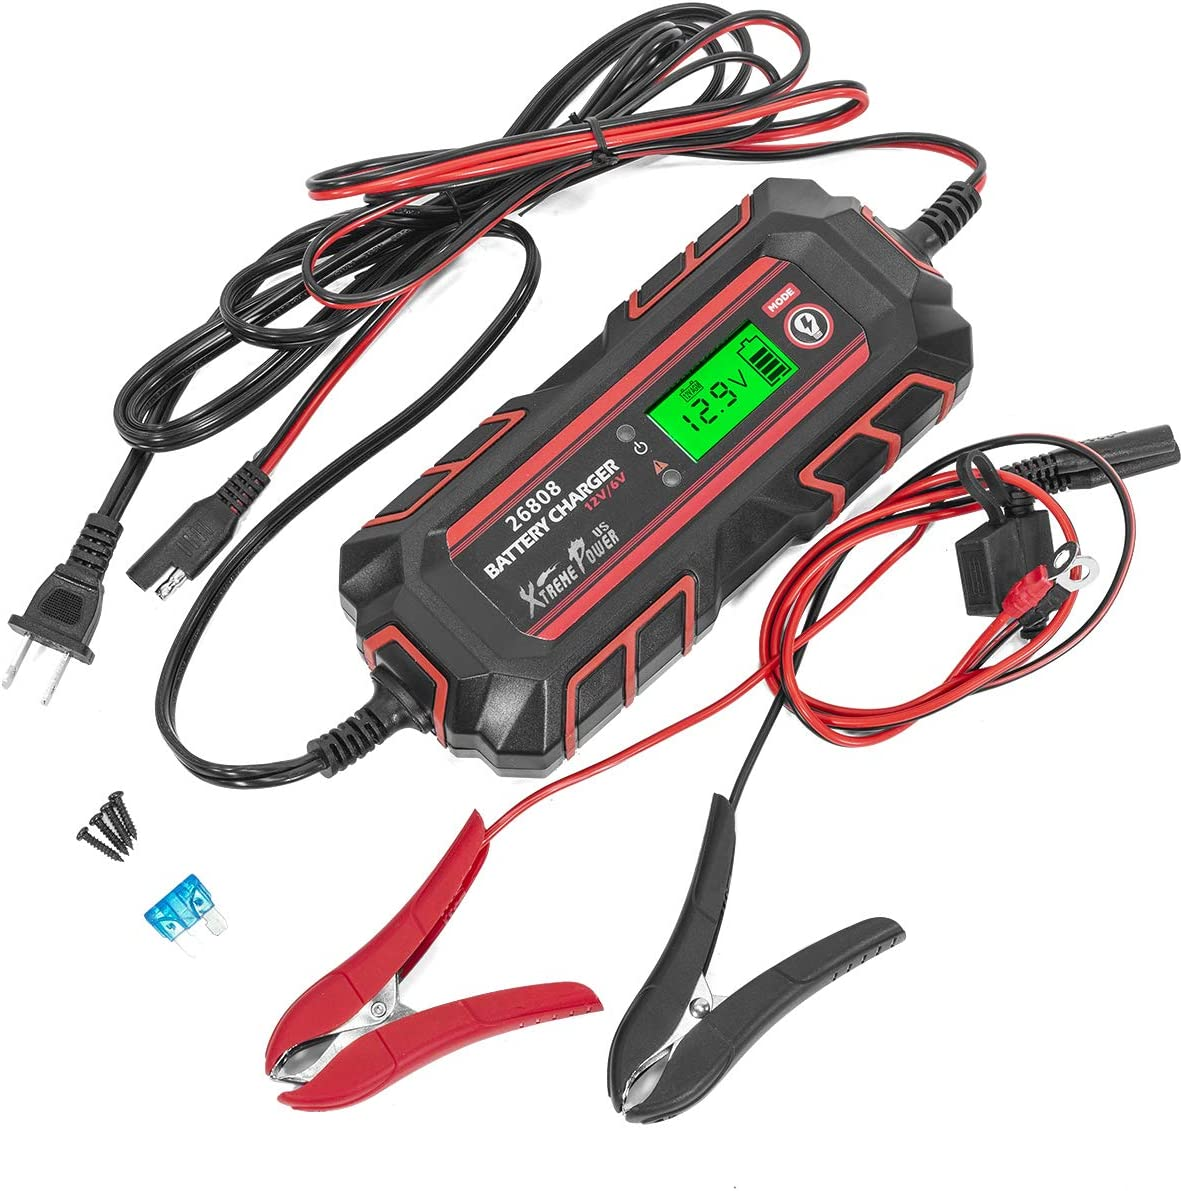 Motorcycle GOOSUO Smart Battery Maintainer car Battery Charger//Jump Starter Boat 6//12V Trickle Charger for Car Truck Lawn Mower SUV ATV and More RV